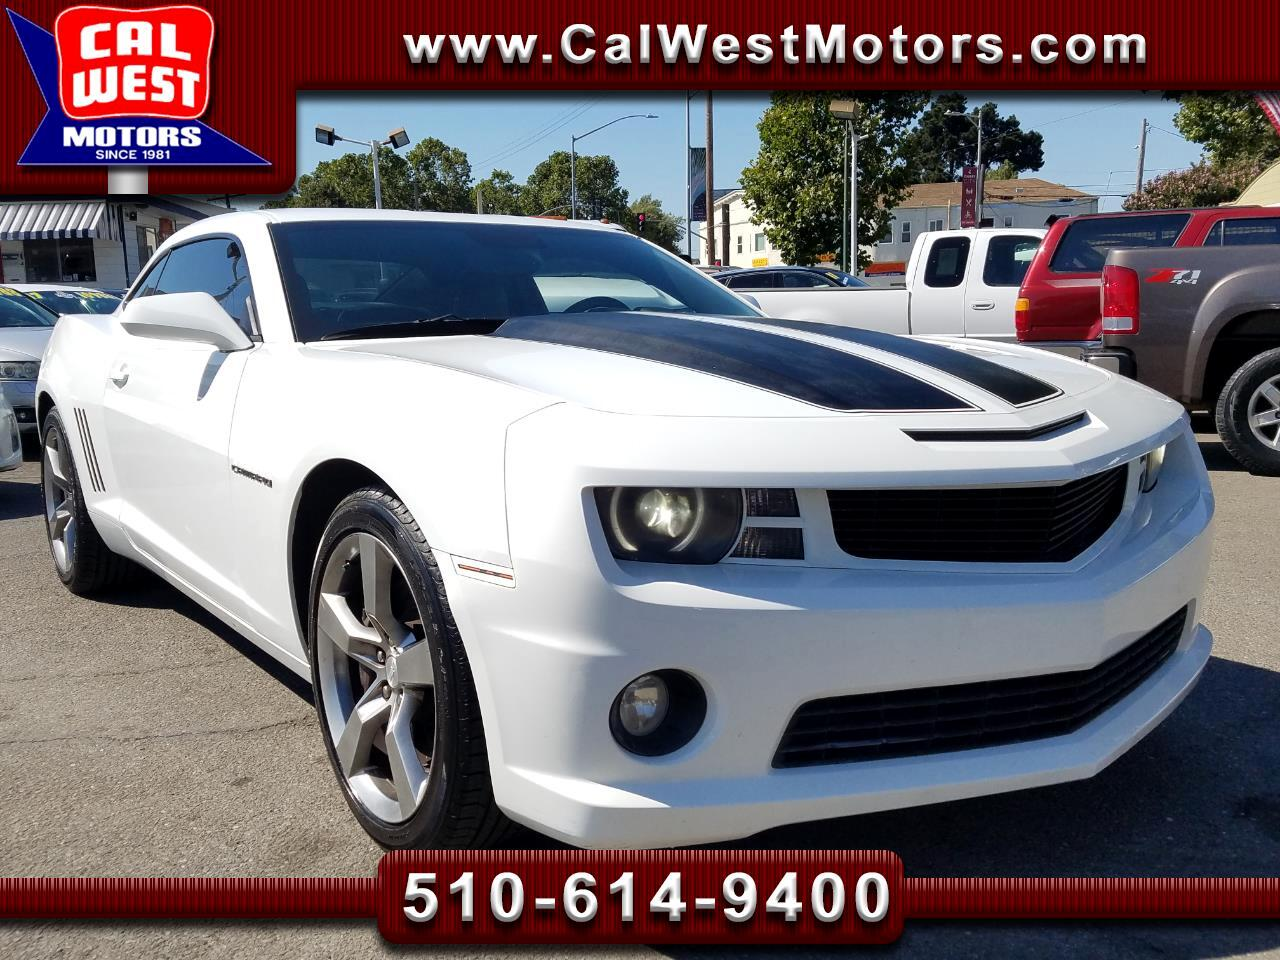 2010 Chevrolet Camaro 2SS-RS Coupe 6-Speed 426HP LS3 1Owner SuperNice!